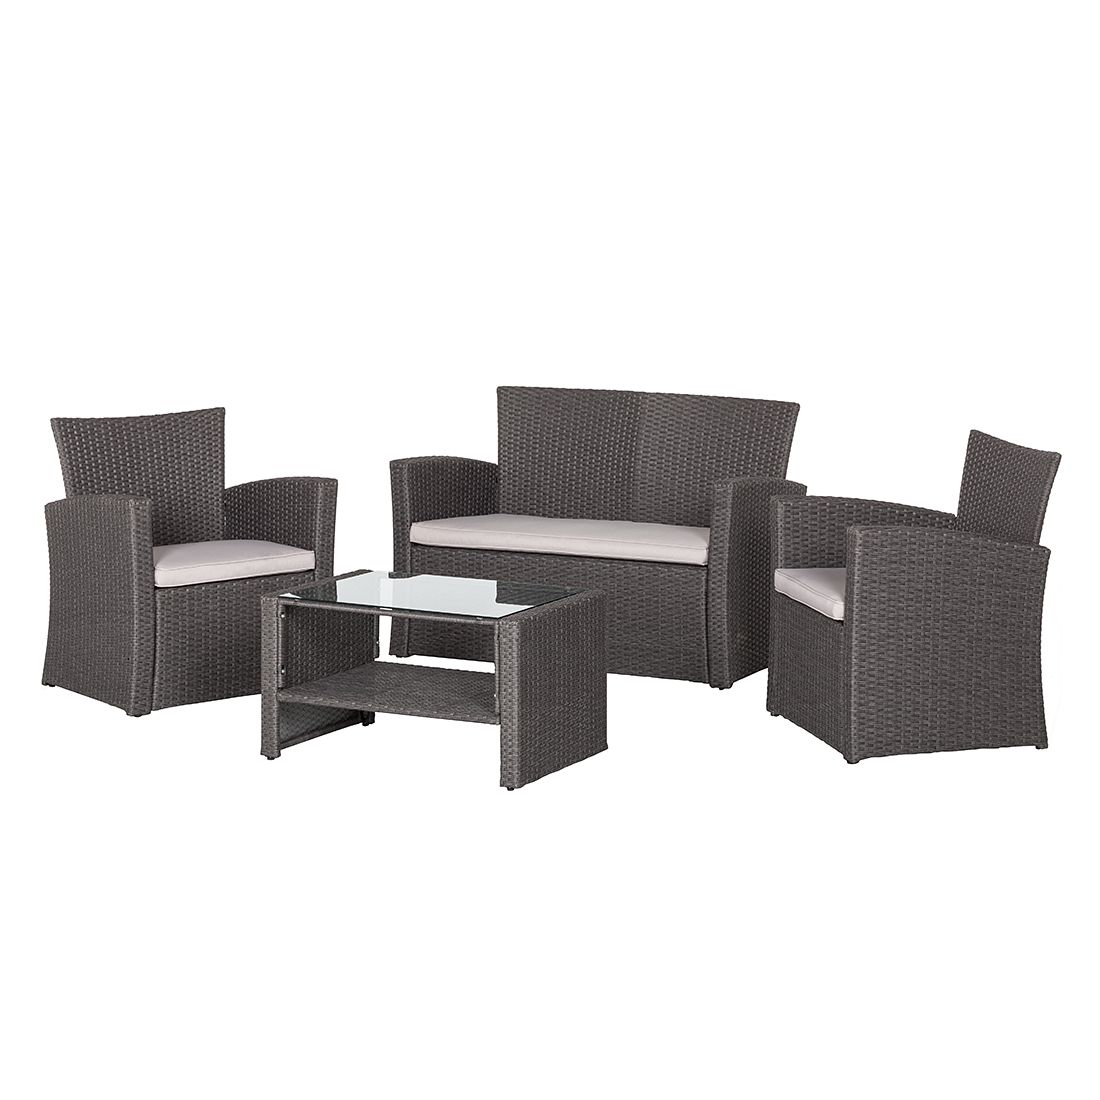 sitzgruppe brindisi 4 teilig polyrattan dunkelgrau kings garden g nstig bestellen. Black Bedroom Furniture Sets. Home Design Ideas